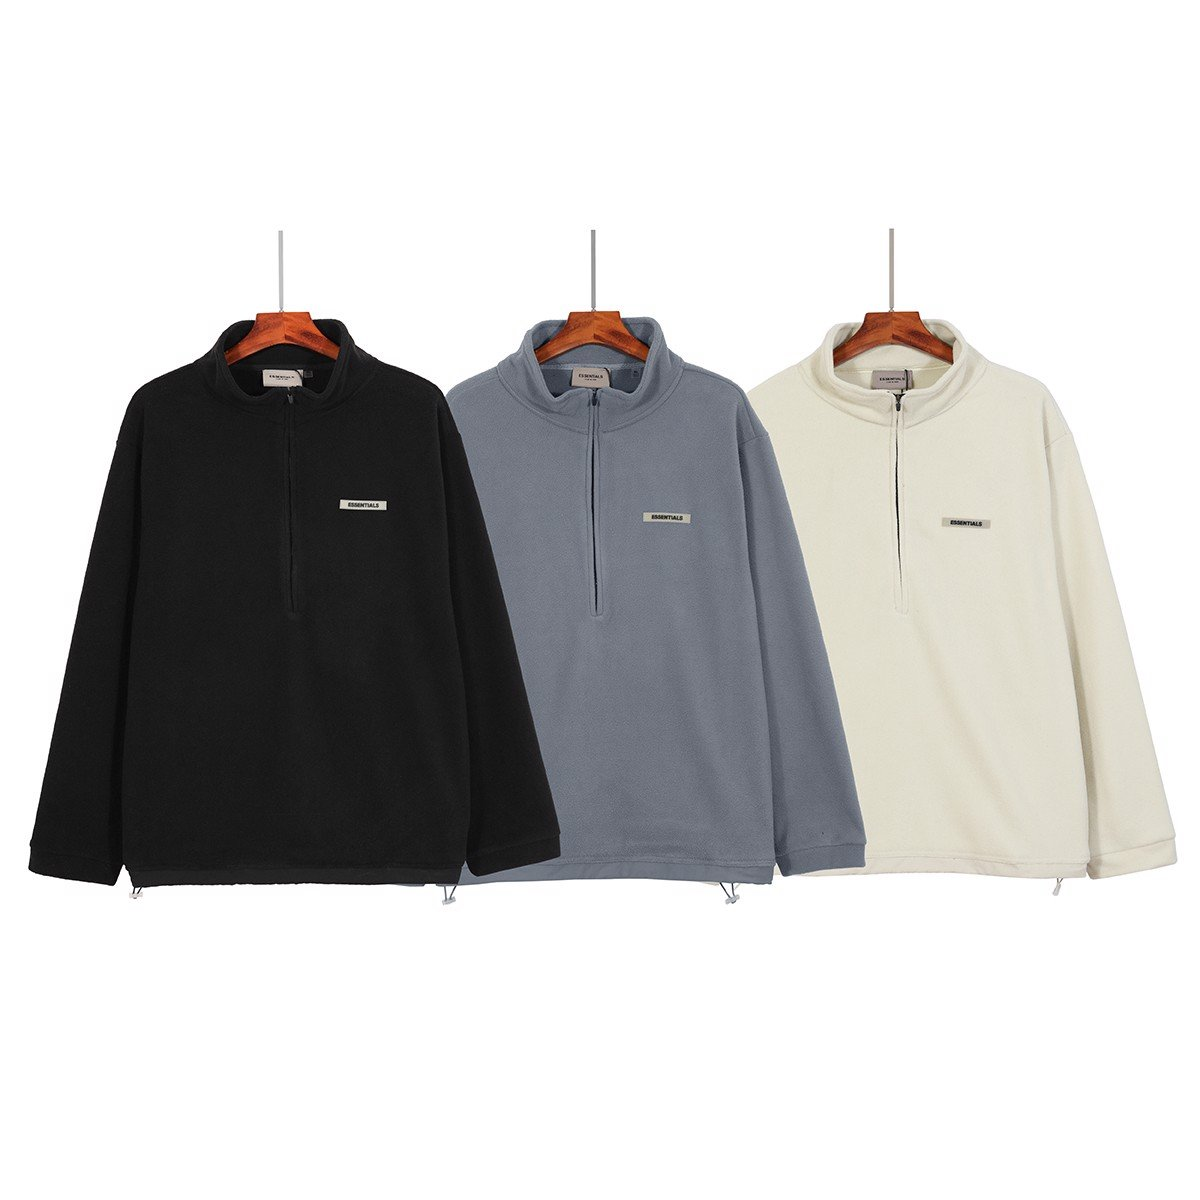 FEAR OF GOD ESSENTIALS Polar Fleece Half-Zip Sweater